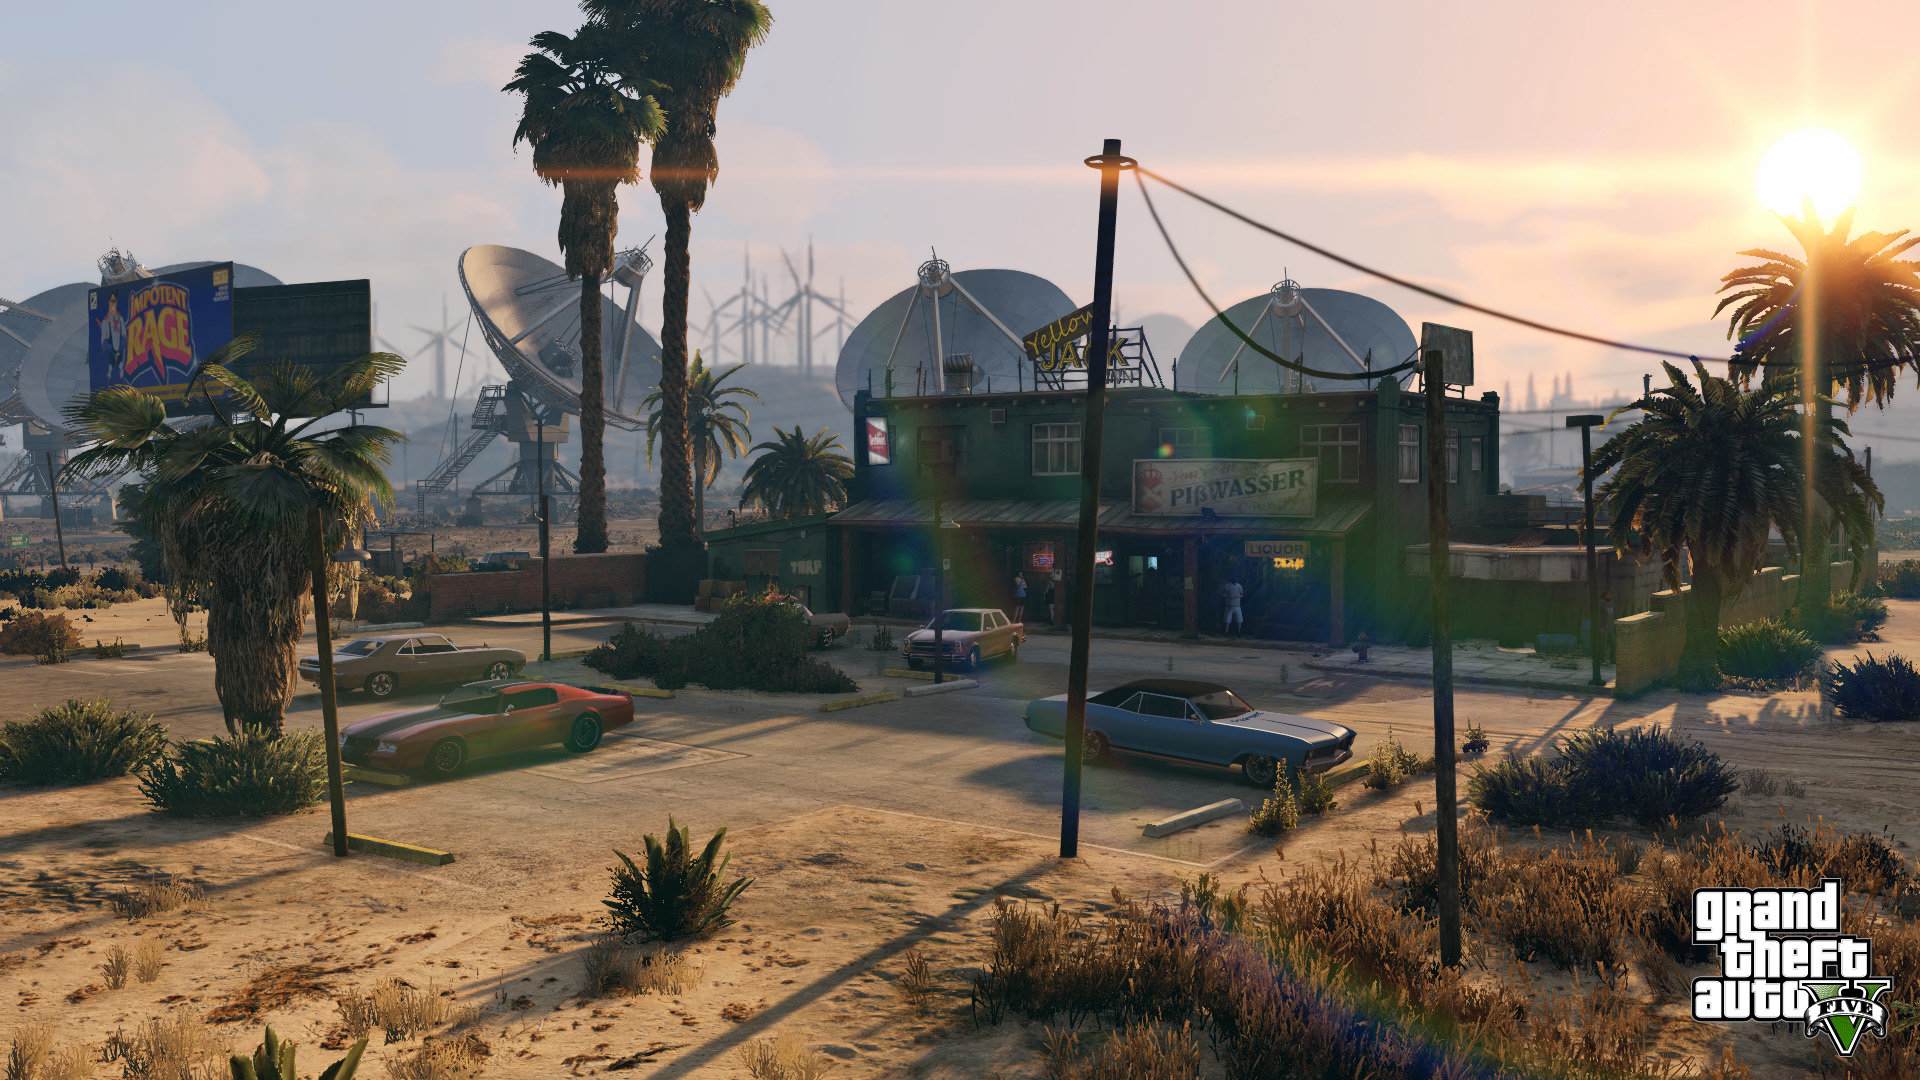 High resolution Grand Theft Auto V (GTA 5) hd 1920x1080 background ID:195151 for PC